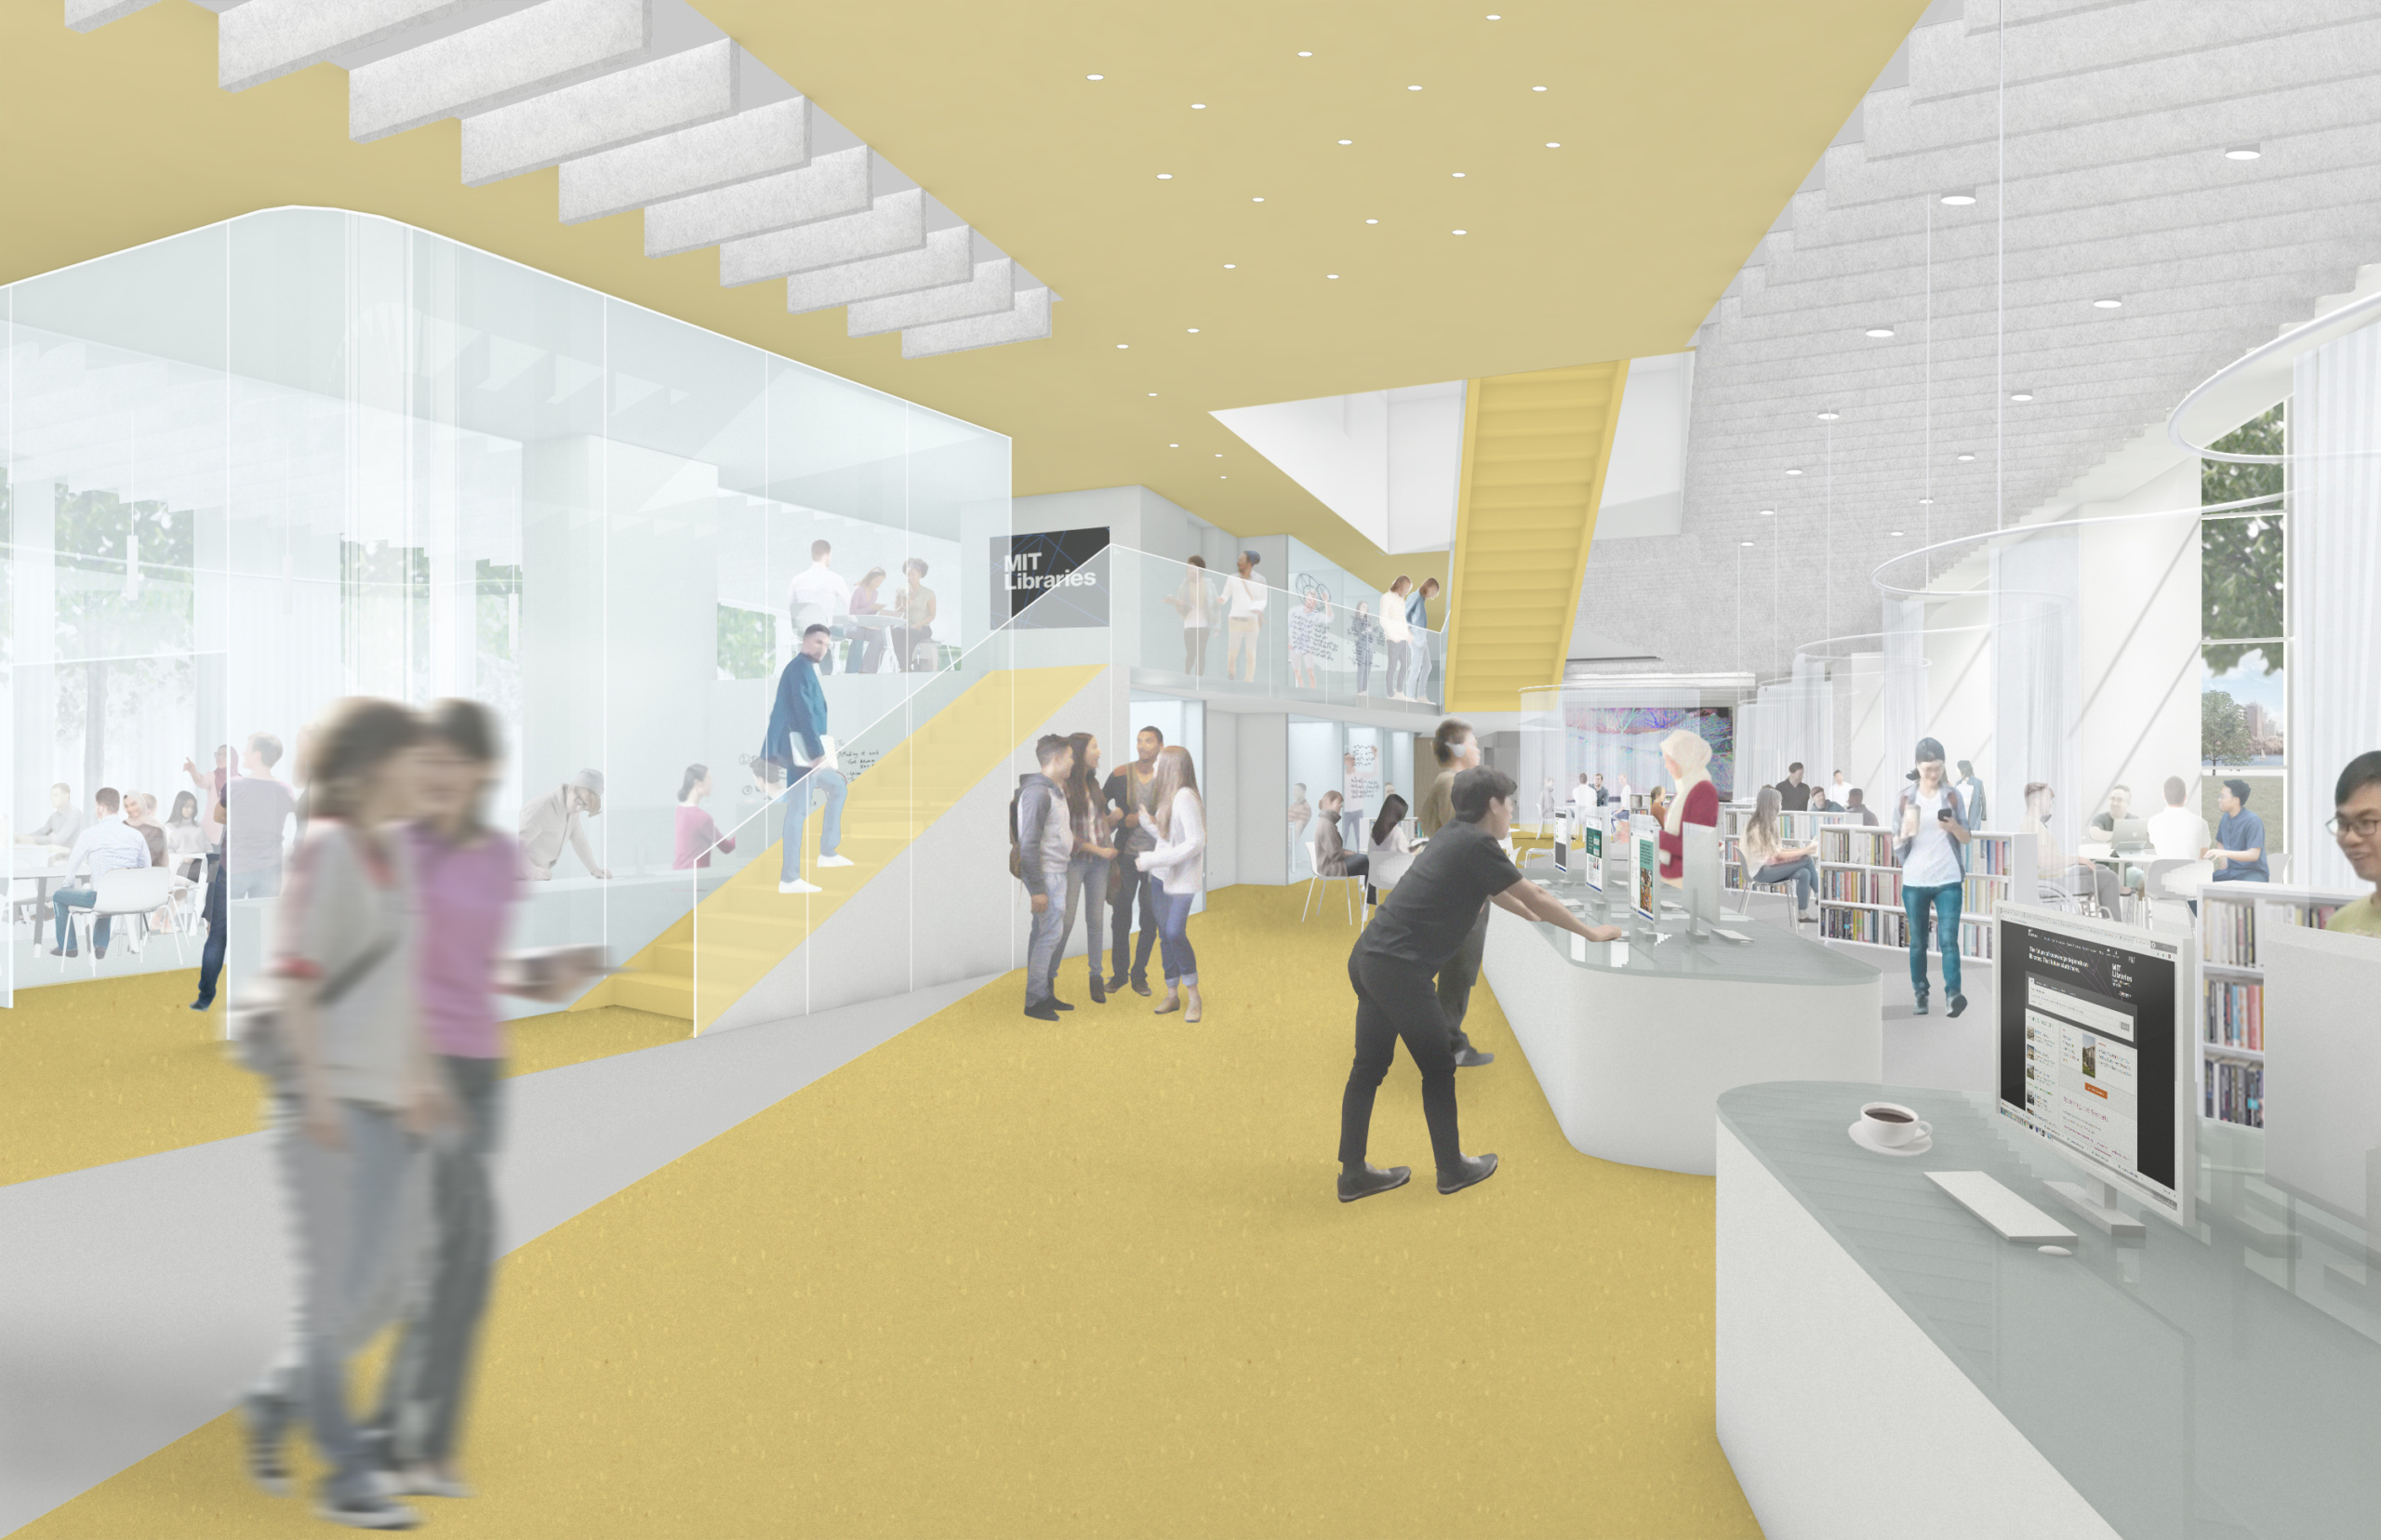 Interior rendering of a yellow library space